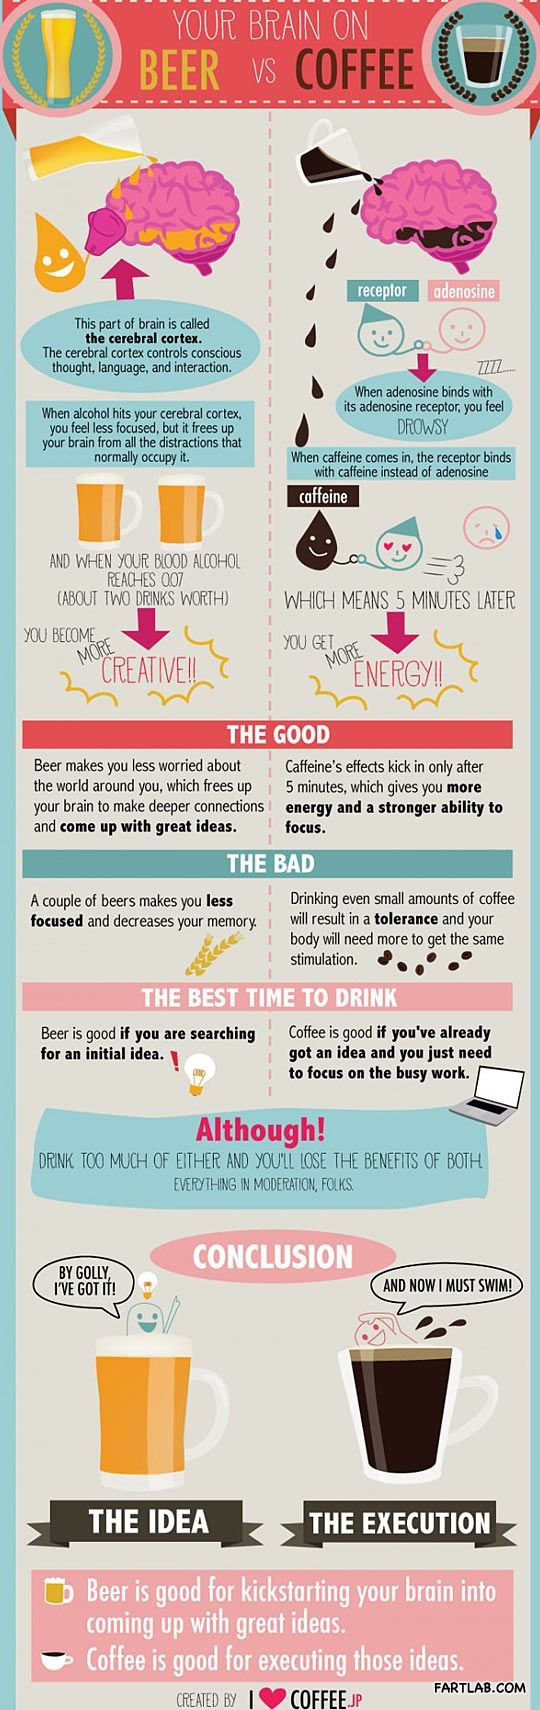 Your brain on coffee vs. your brain on beer